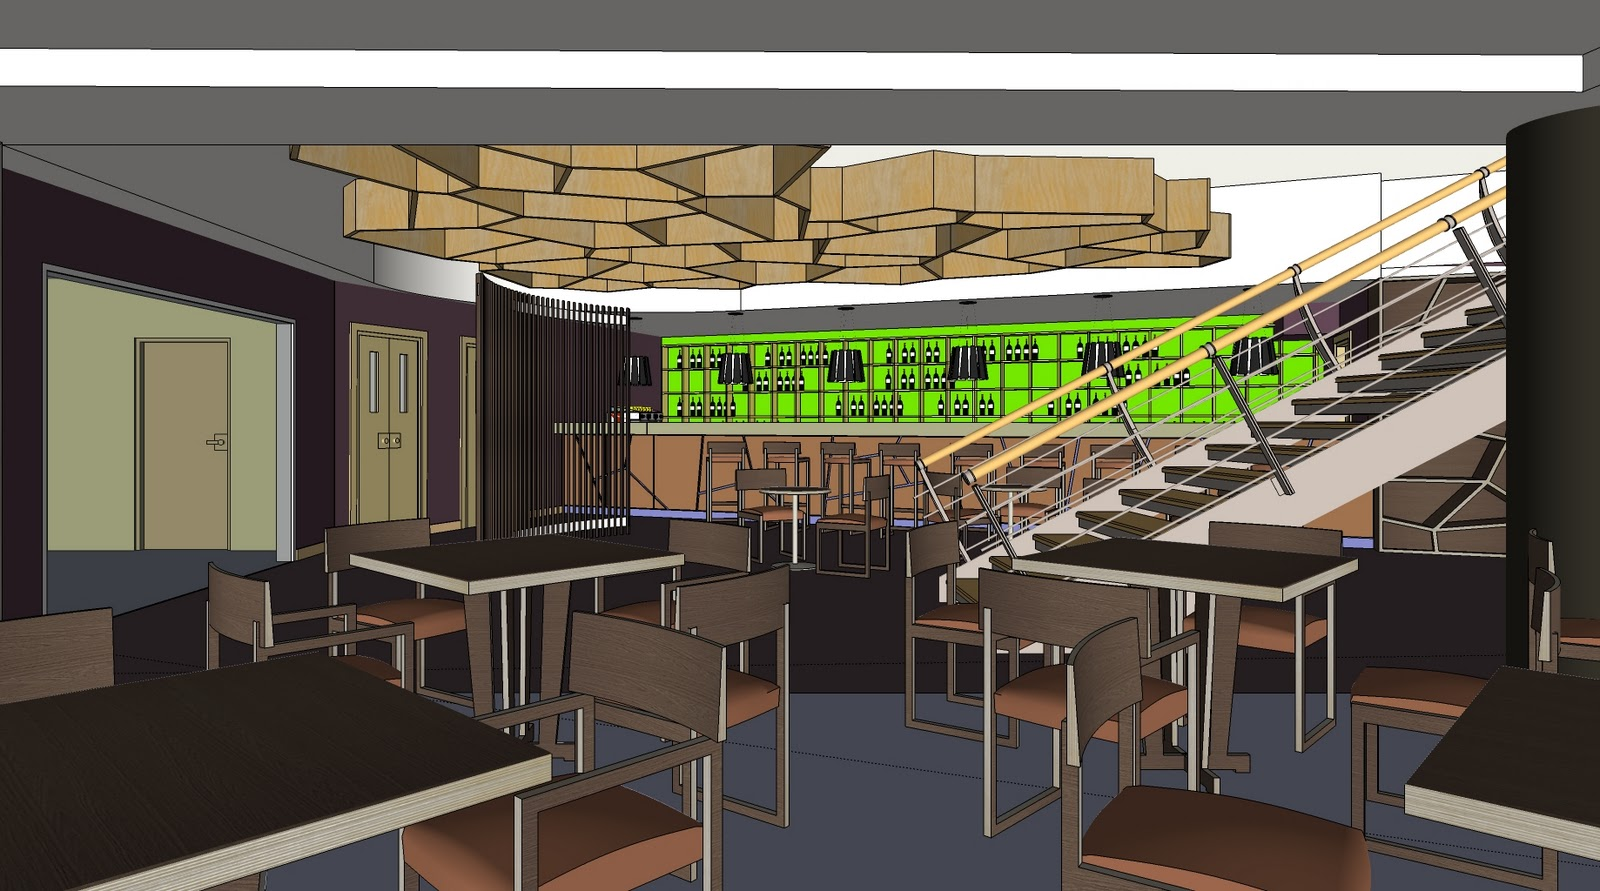 Archicad 19 helps you design implement your architectural projects faster than ever!